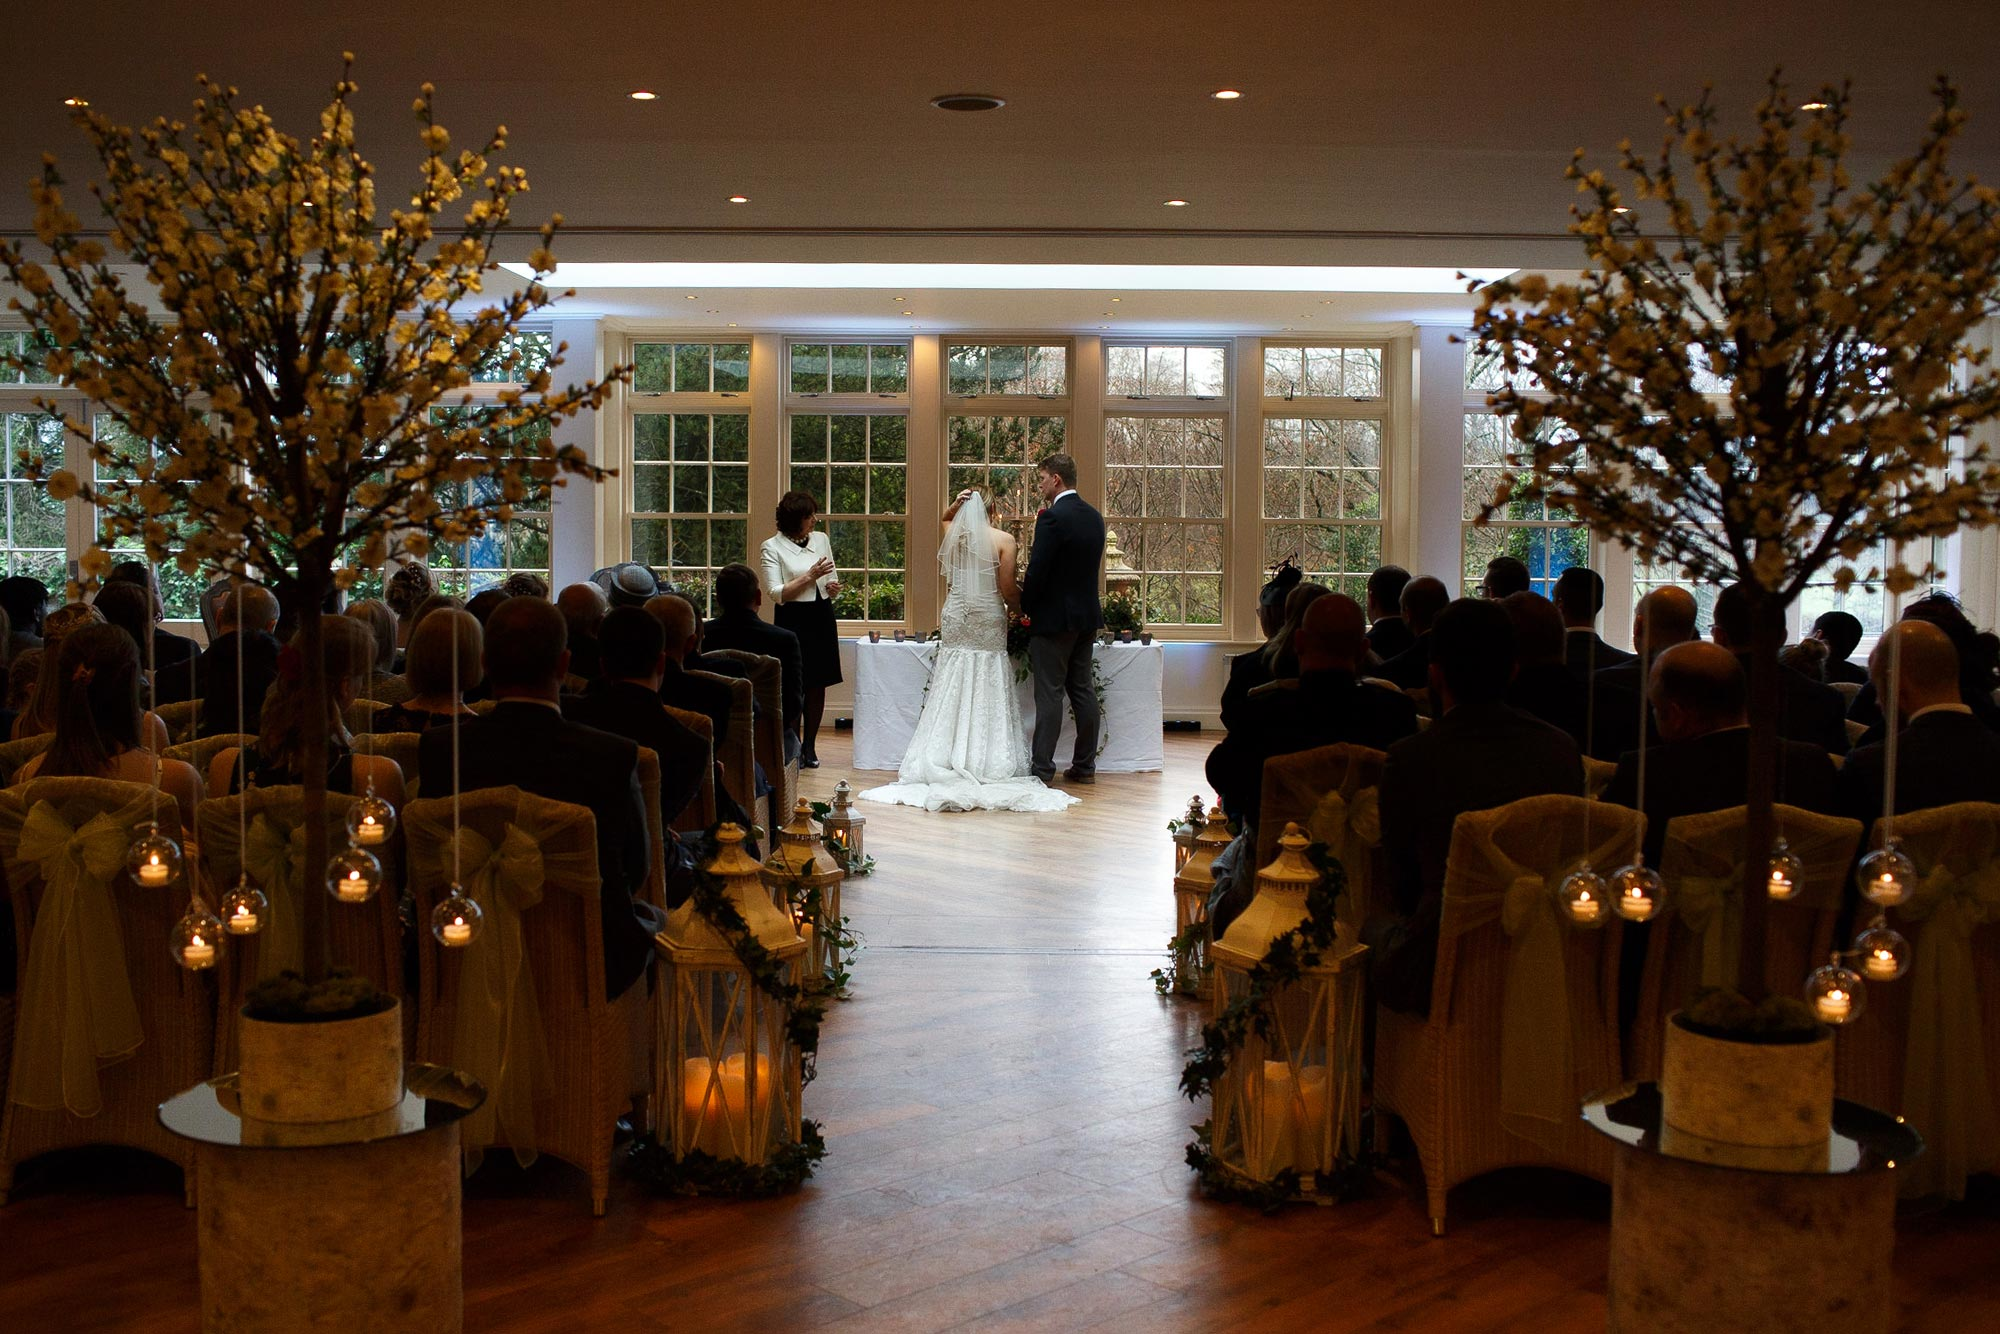 Photograph of the ceremony room at Close up of the Bride and Groom saying their vows inside the conservatory at Mitton Hall with the bride and groom at the top of the aisle